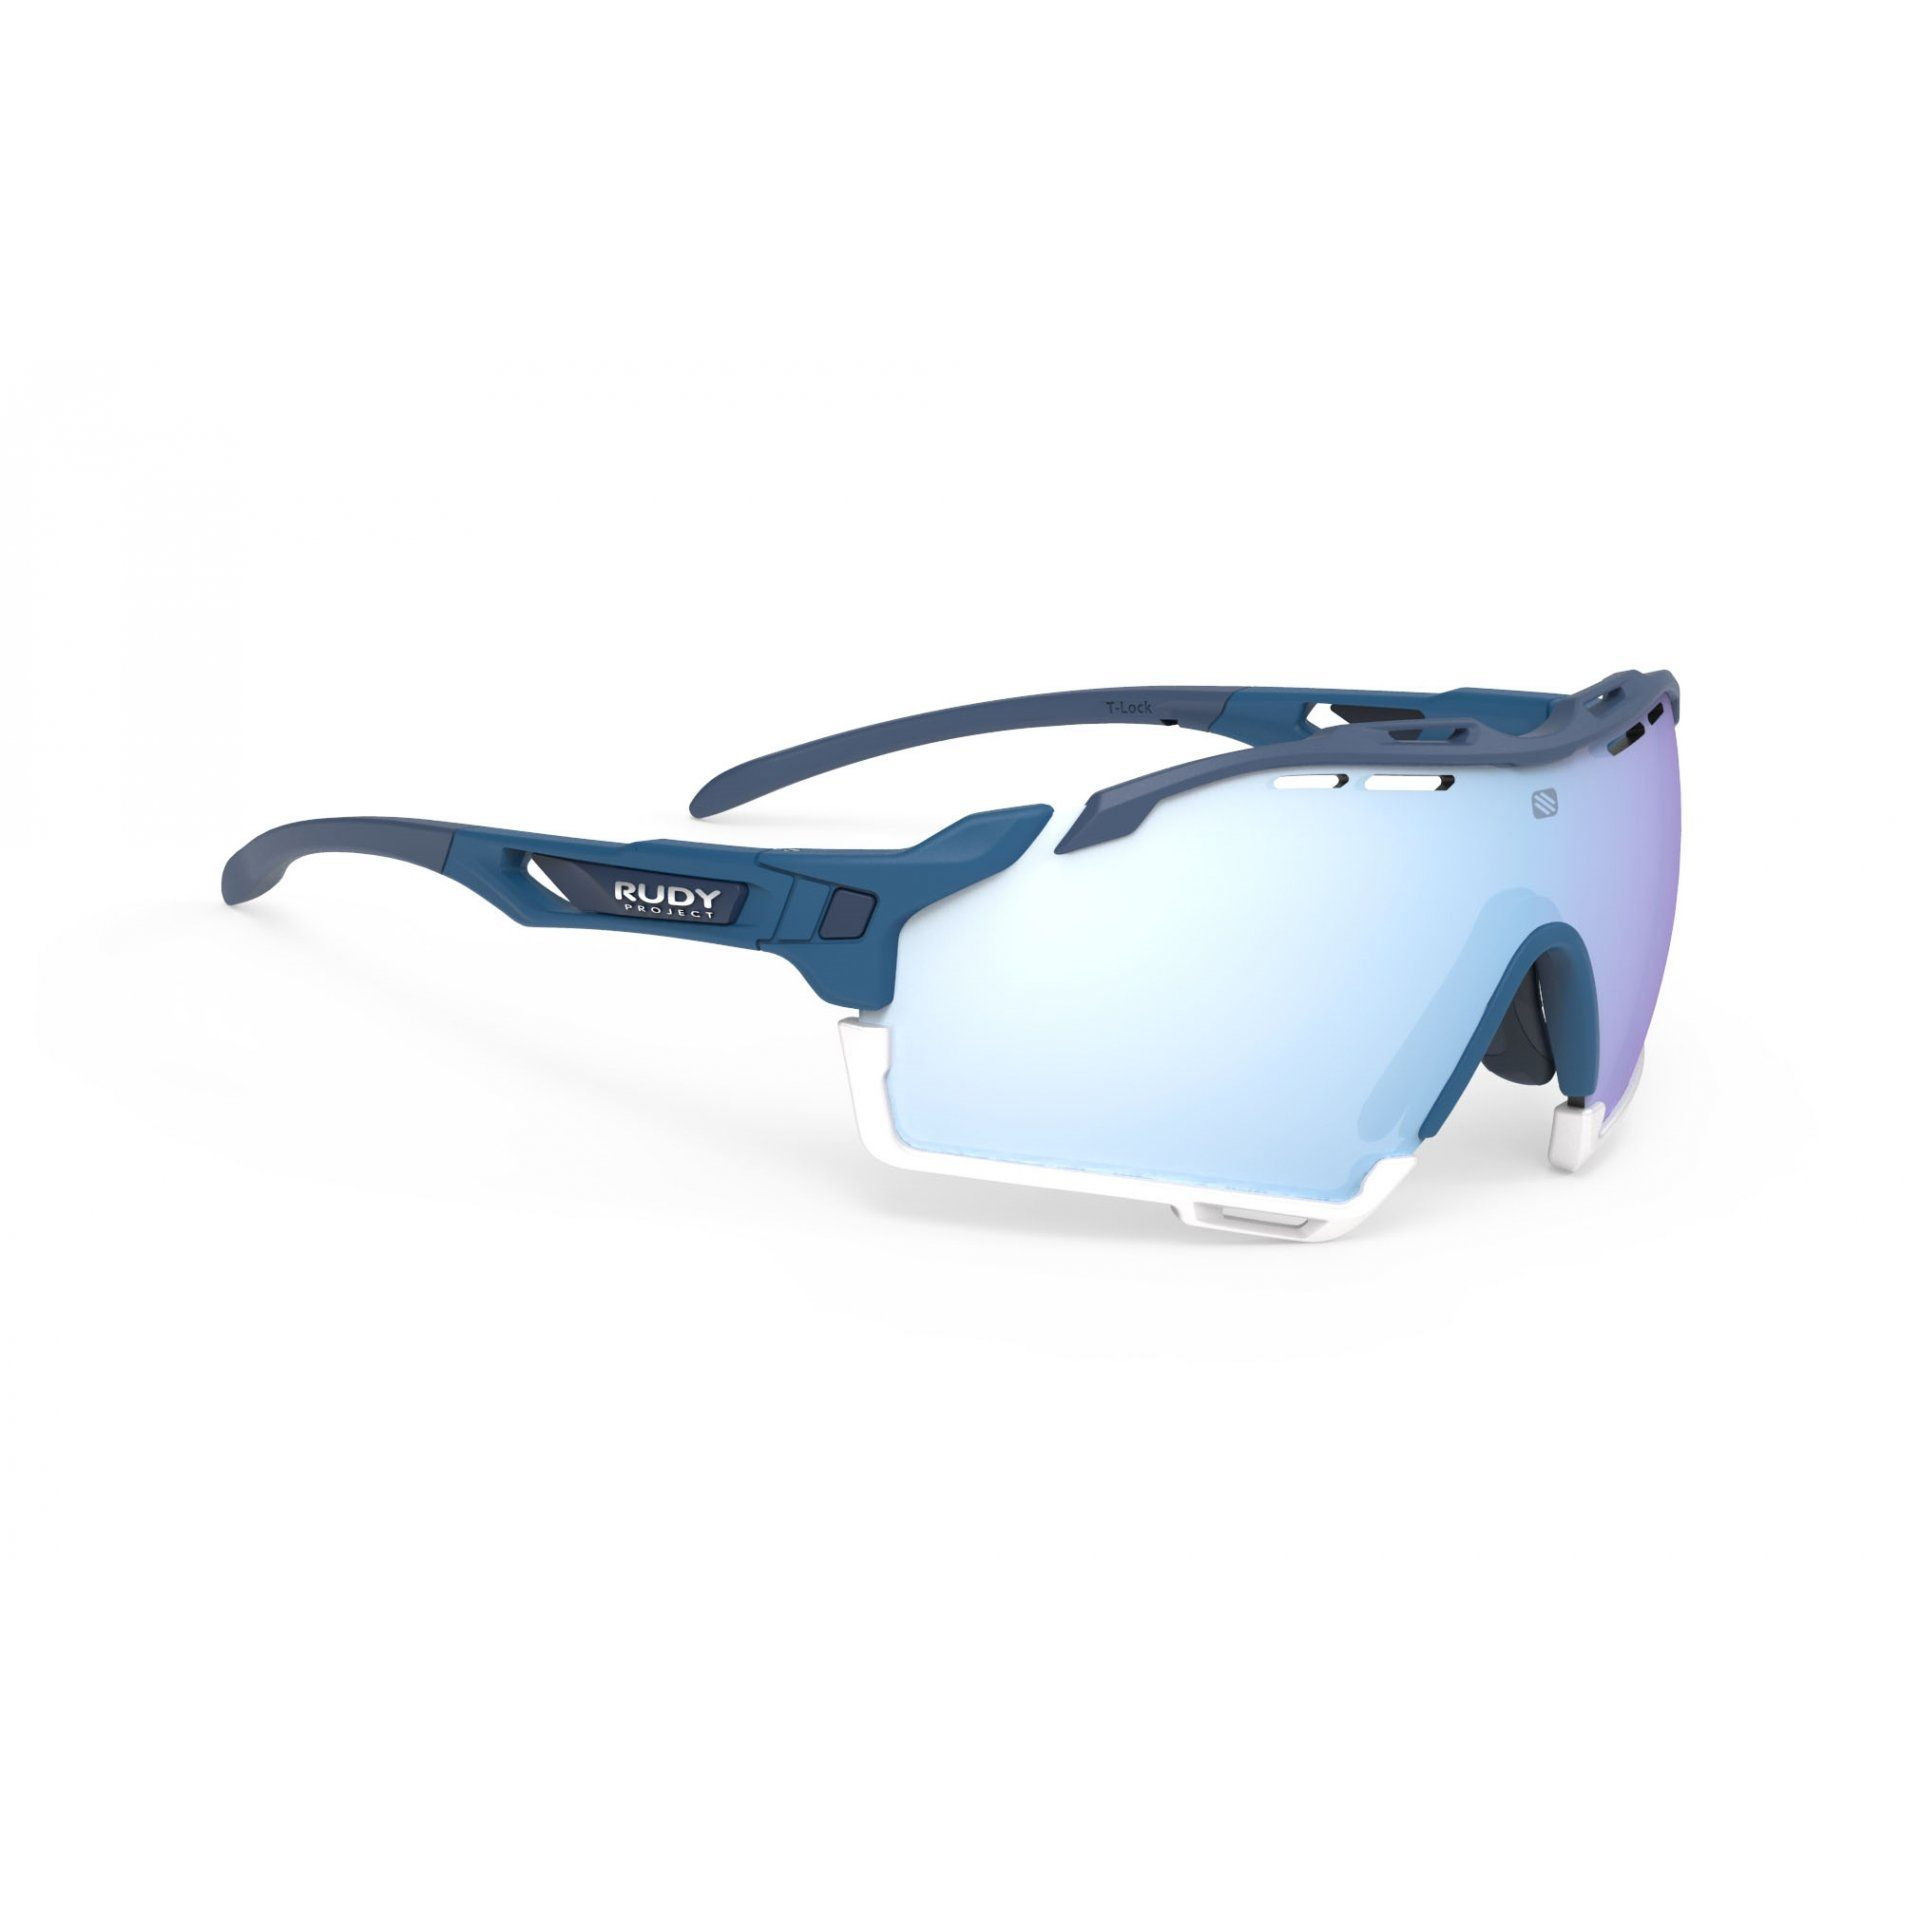 OKULARY RUDY PROJECT CUTLINE PACIFIC BLUE MATTE+MULTILASER ICE 1